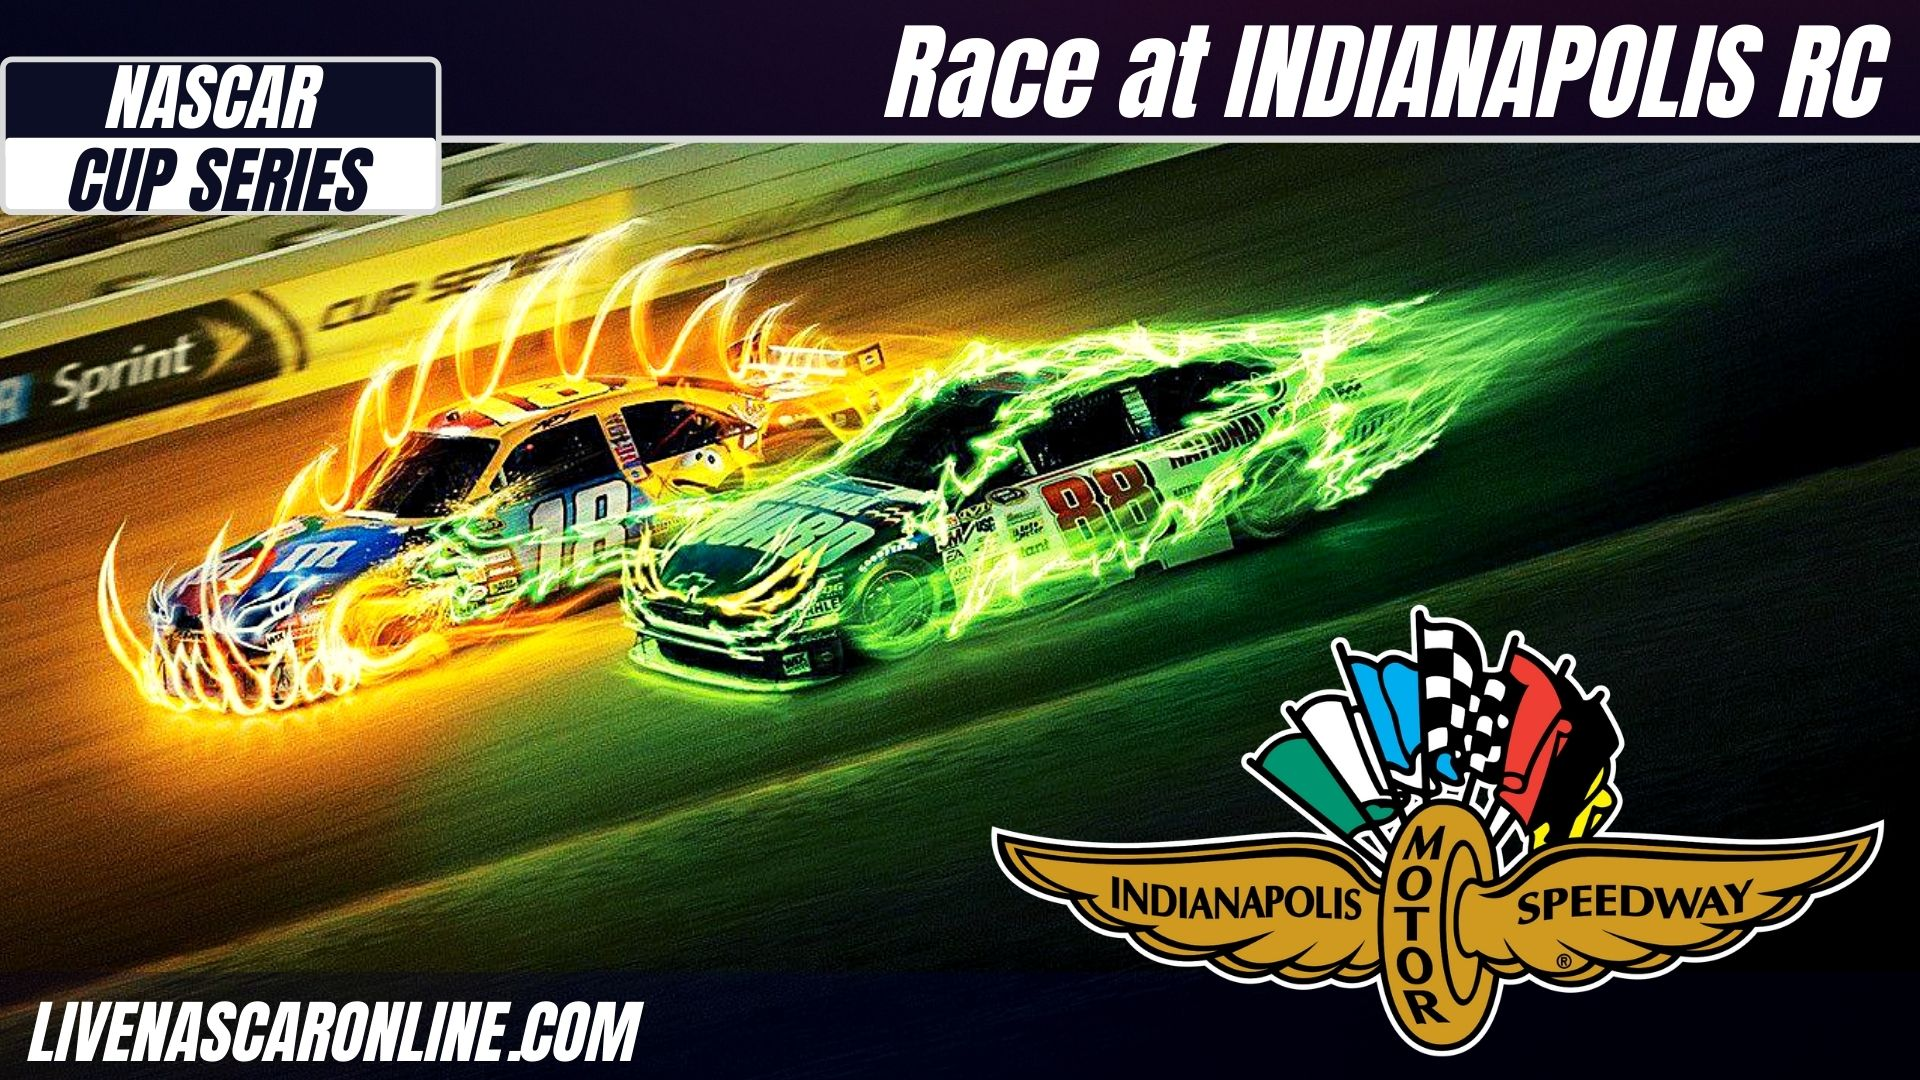 NASCAR Race at Indianapolis RC Live Stream 2021